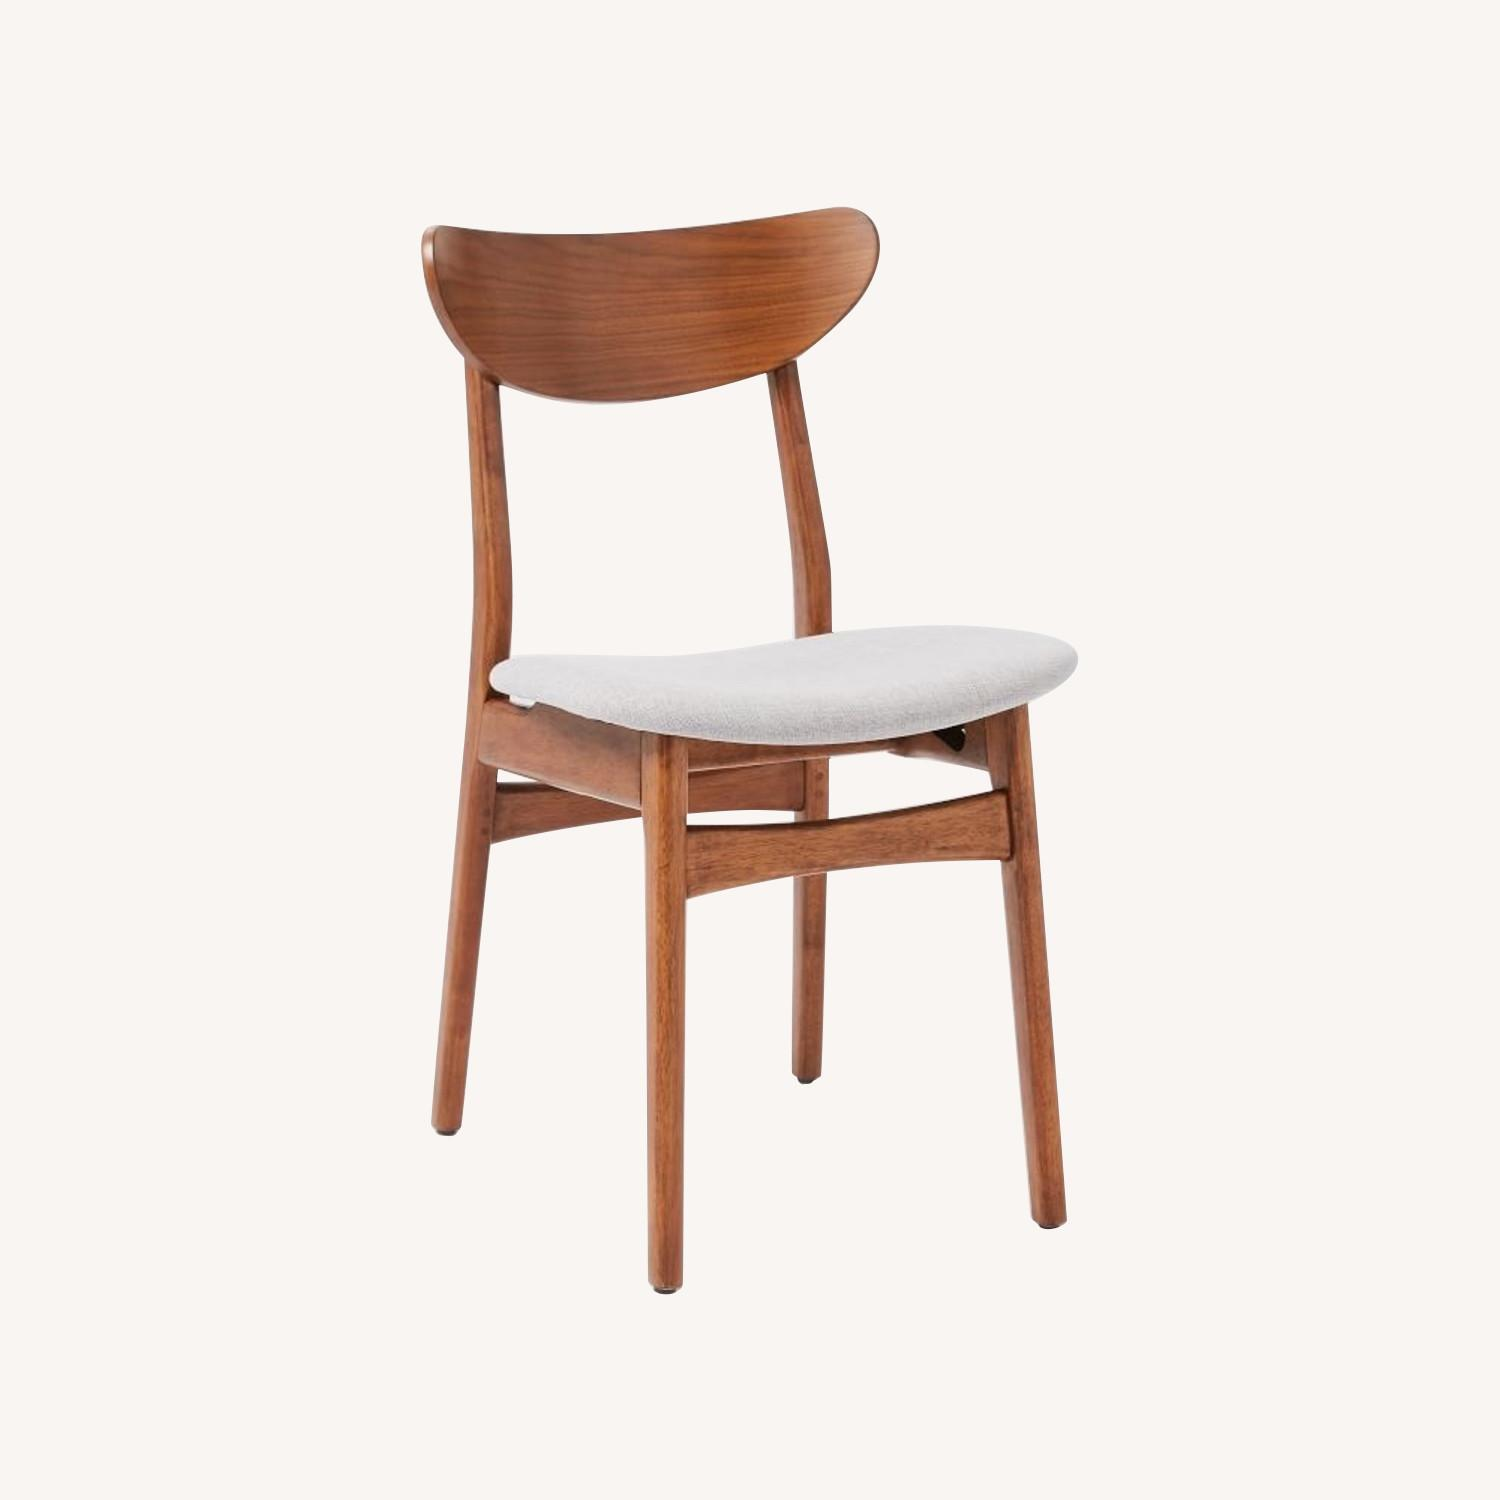 West Elm Classic Cafe Upholstered Dining Chair - image-12